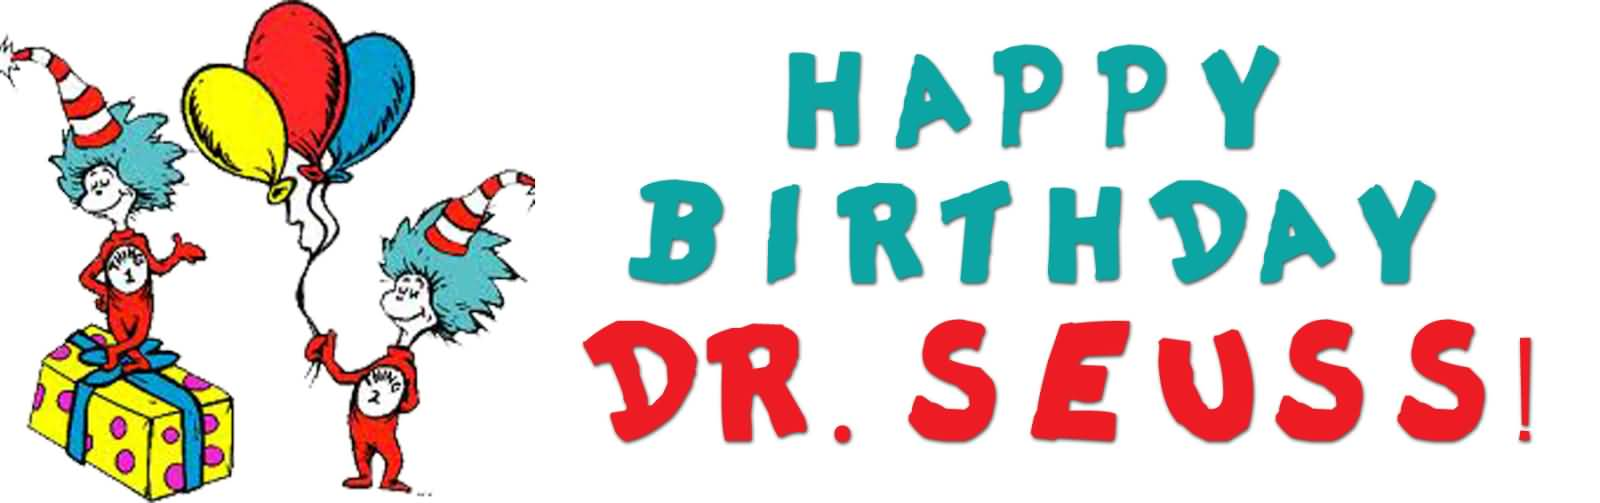 Dr seuss clipart poster. Happy birthday facebook cover